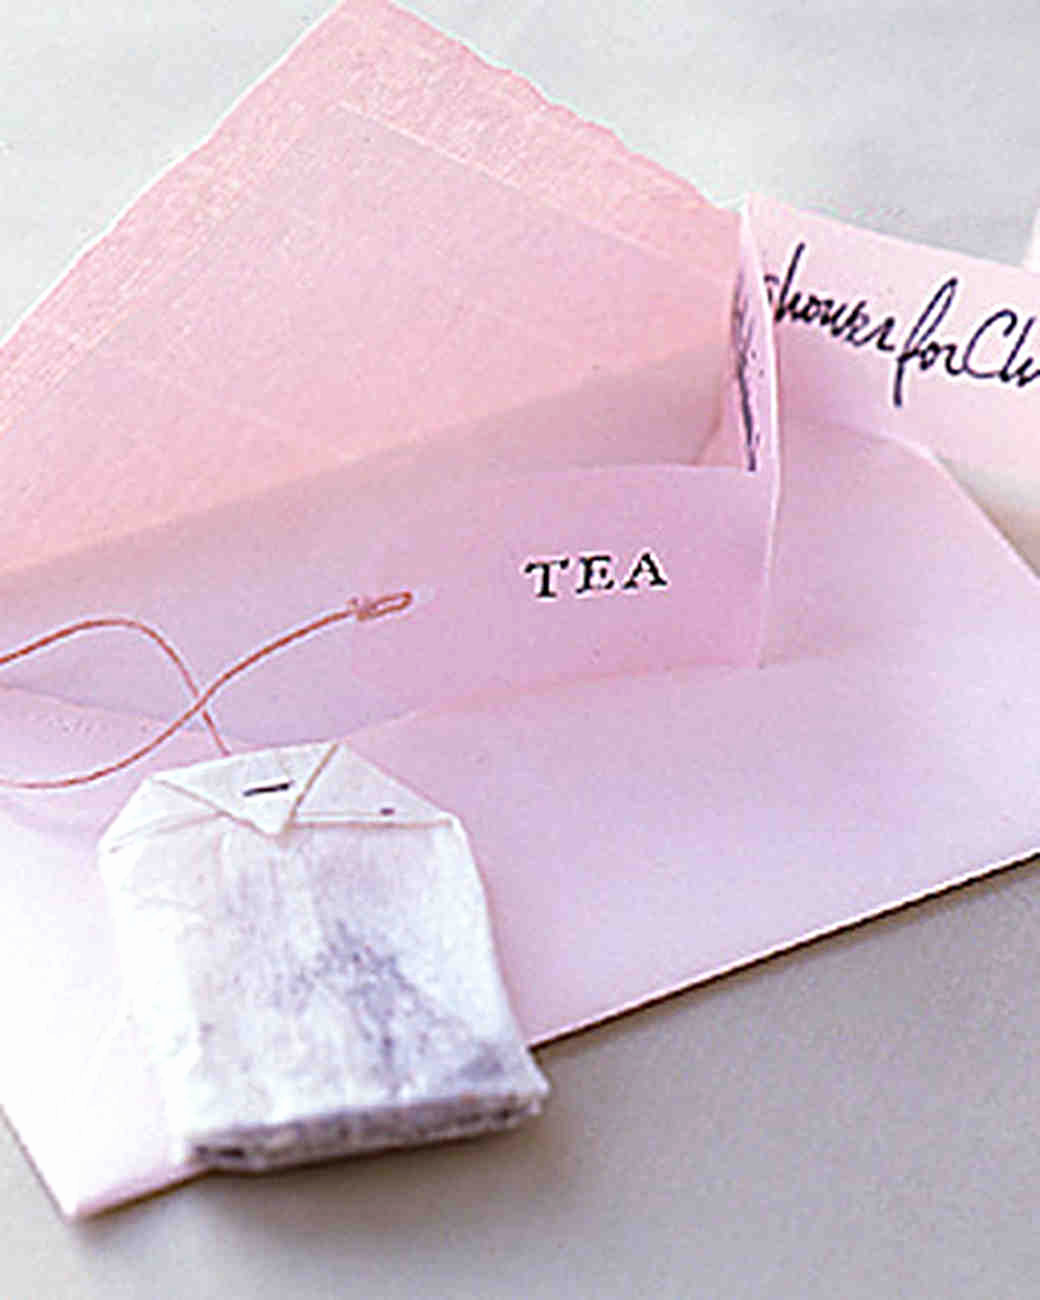 Tea Party Invitation Ideas Inspirational Bridal Shower Tea Party Ideas for A Sip Worthy Celebration